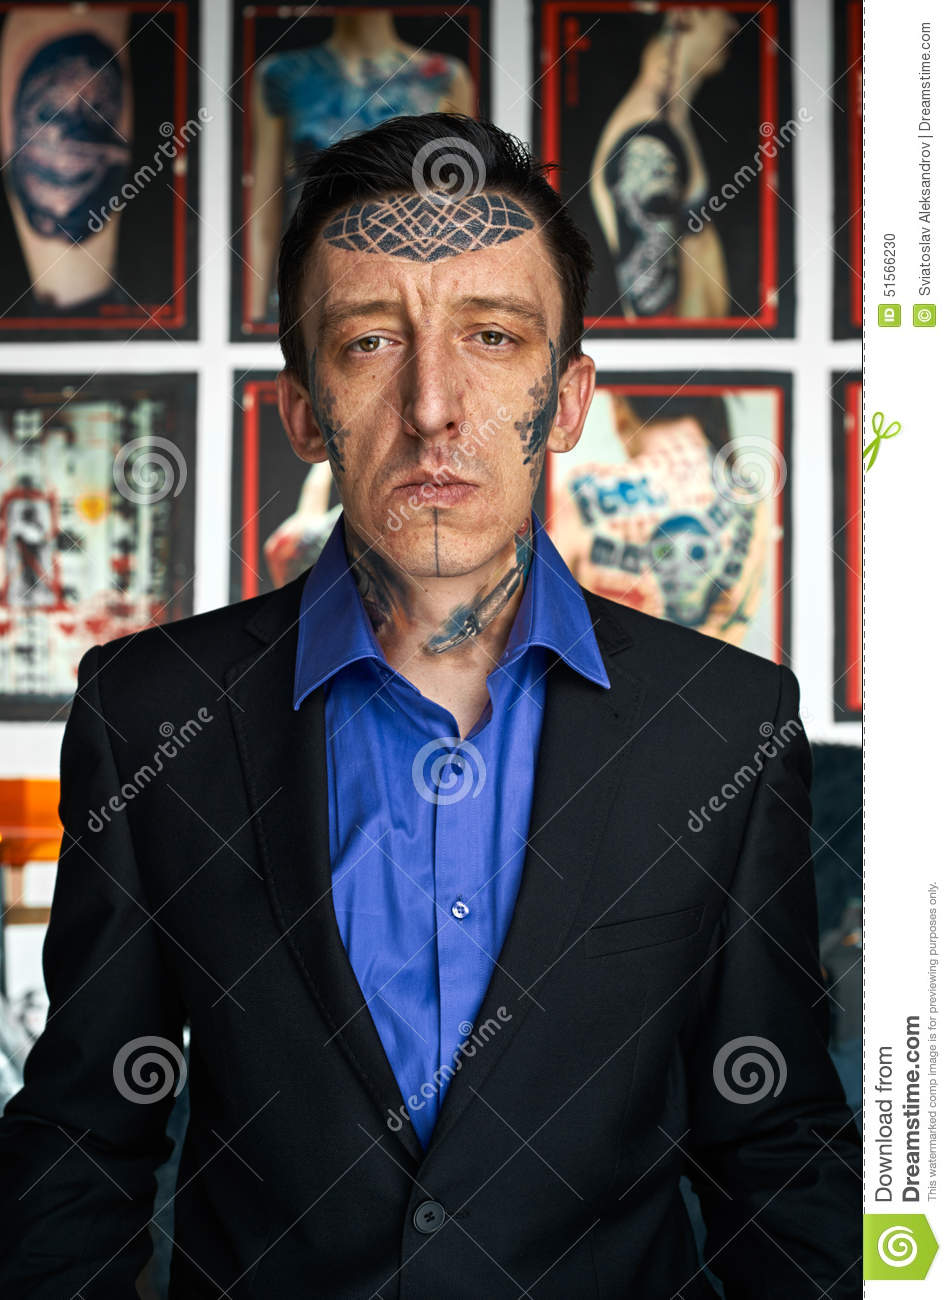 Tattoo Master In Black Jacket And Blue Shirt In Studio Stock Photo ...